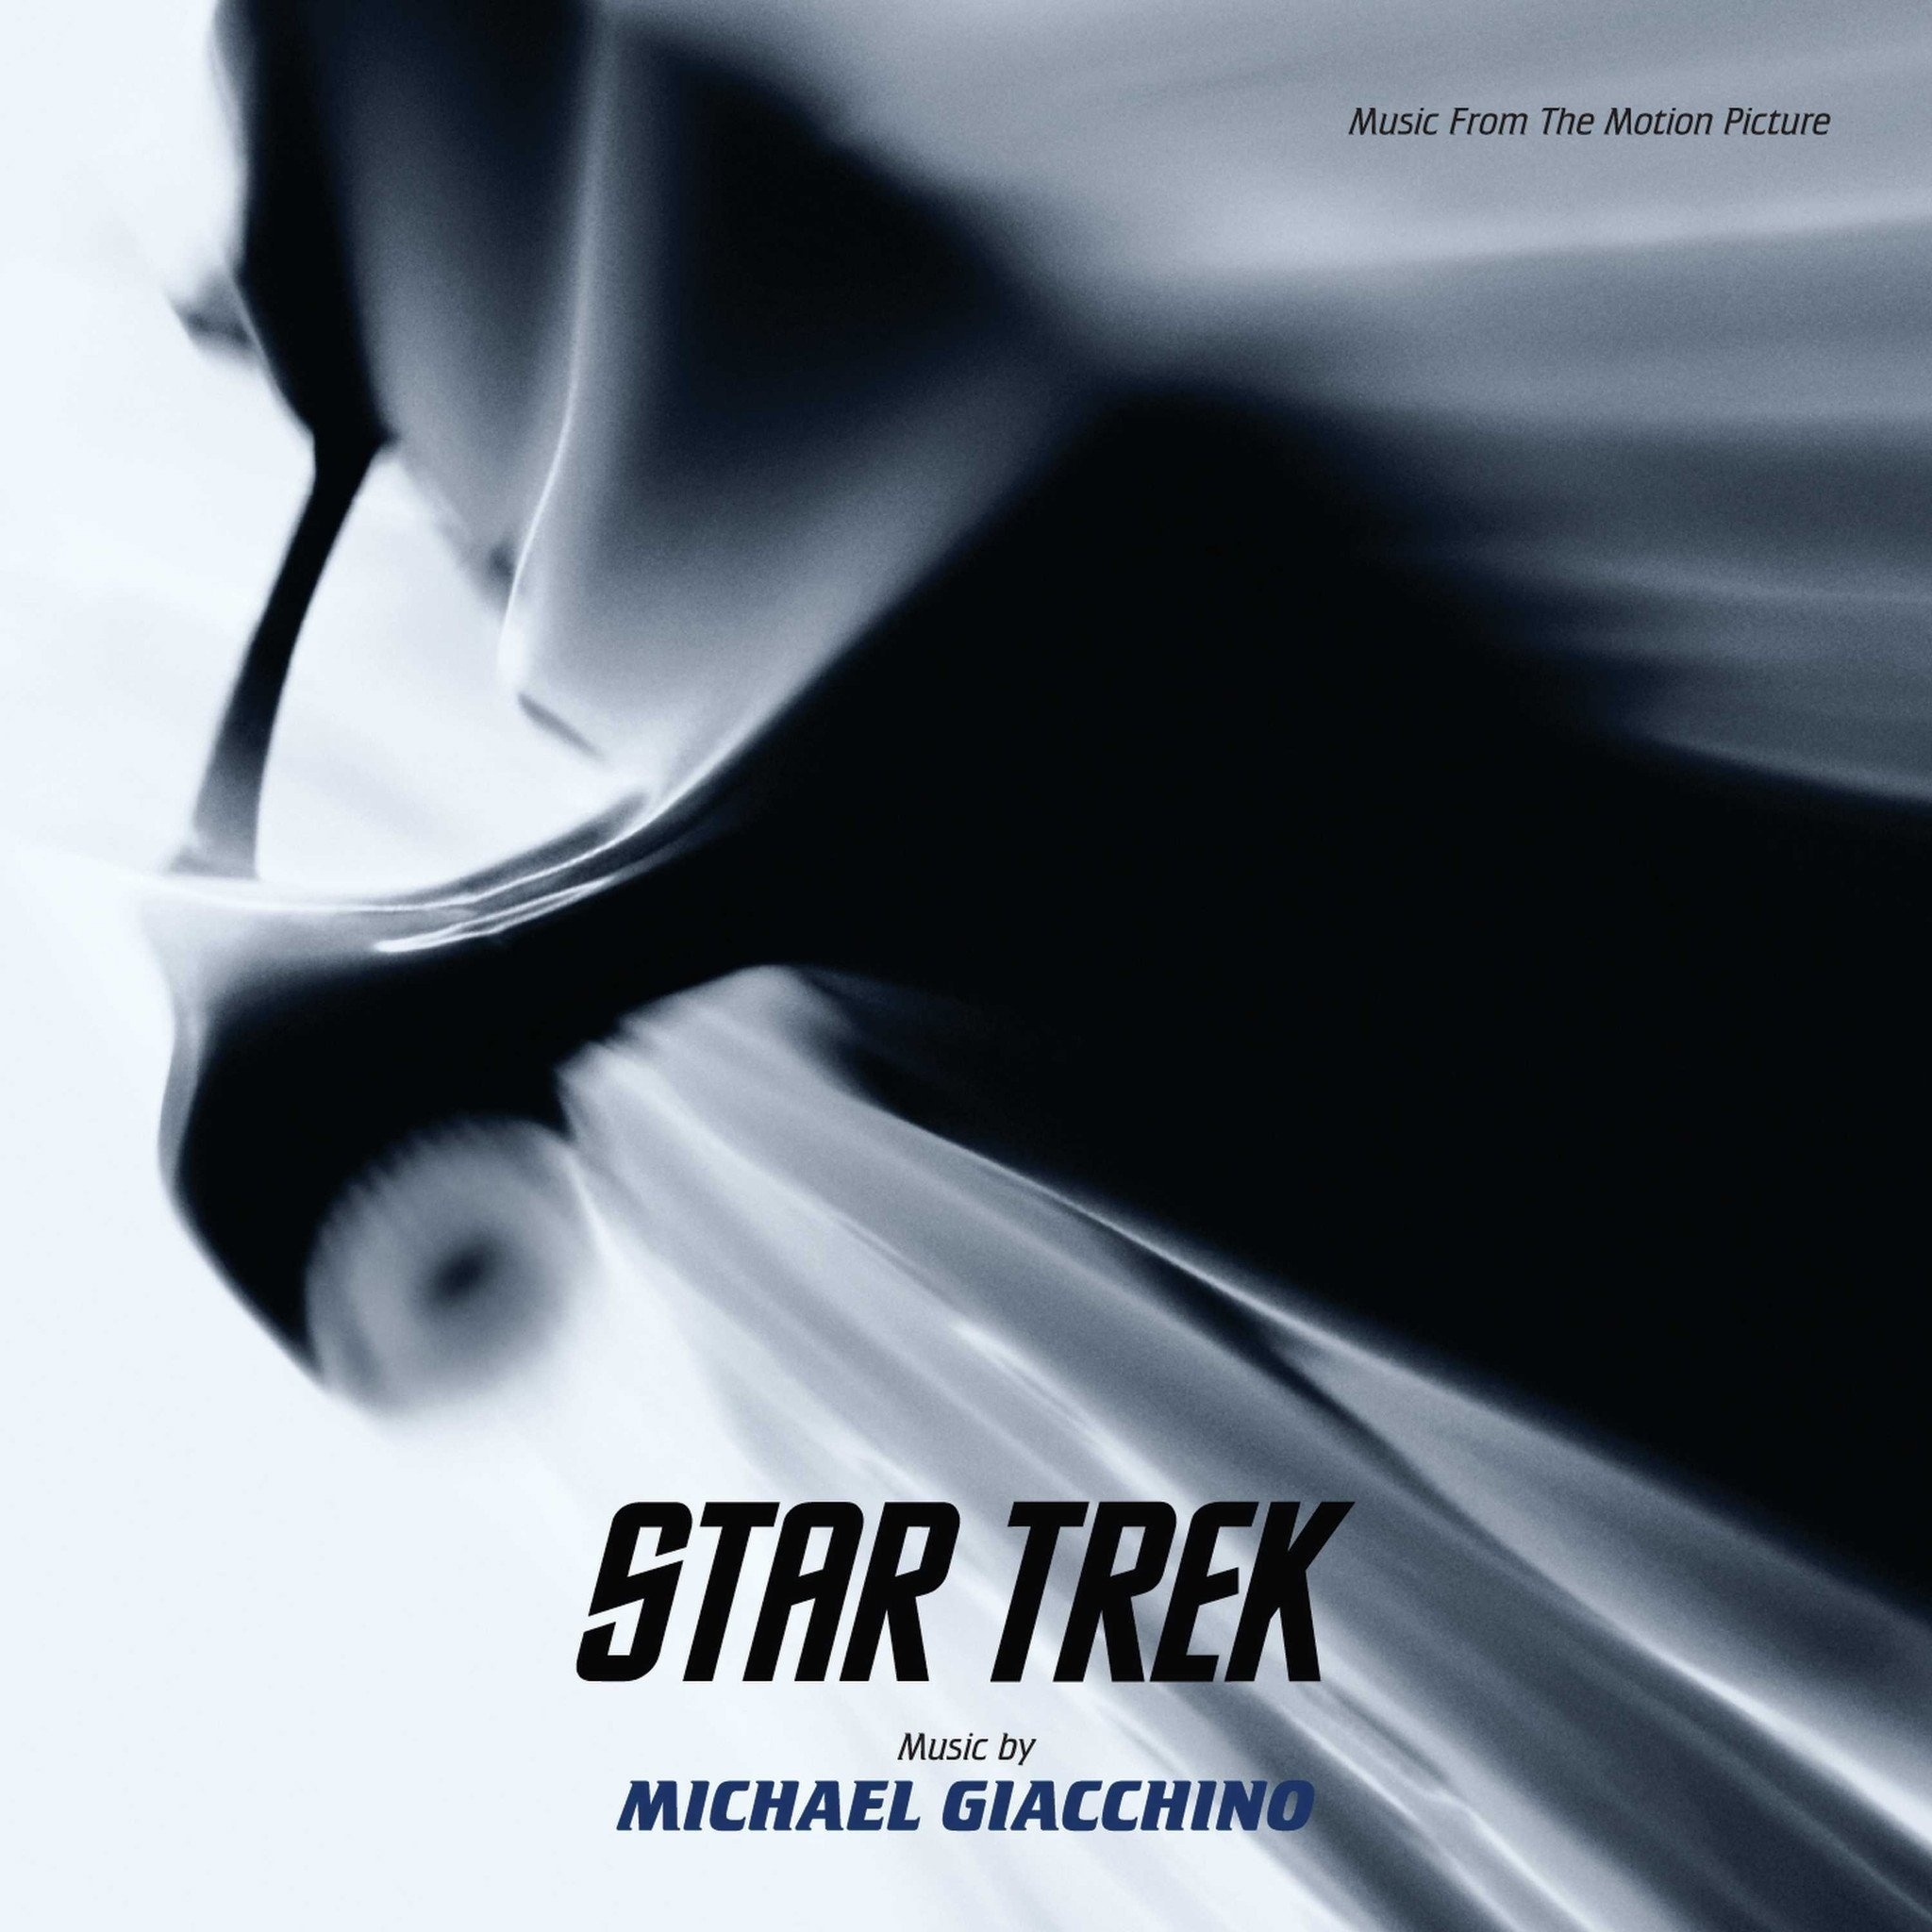 CD : Soundtrack - Star Trek (Score) (CD)